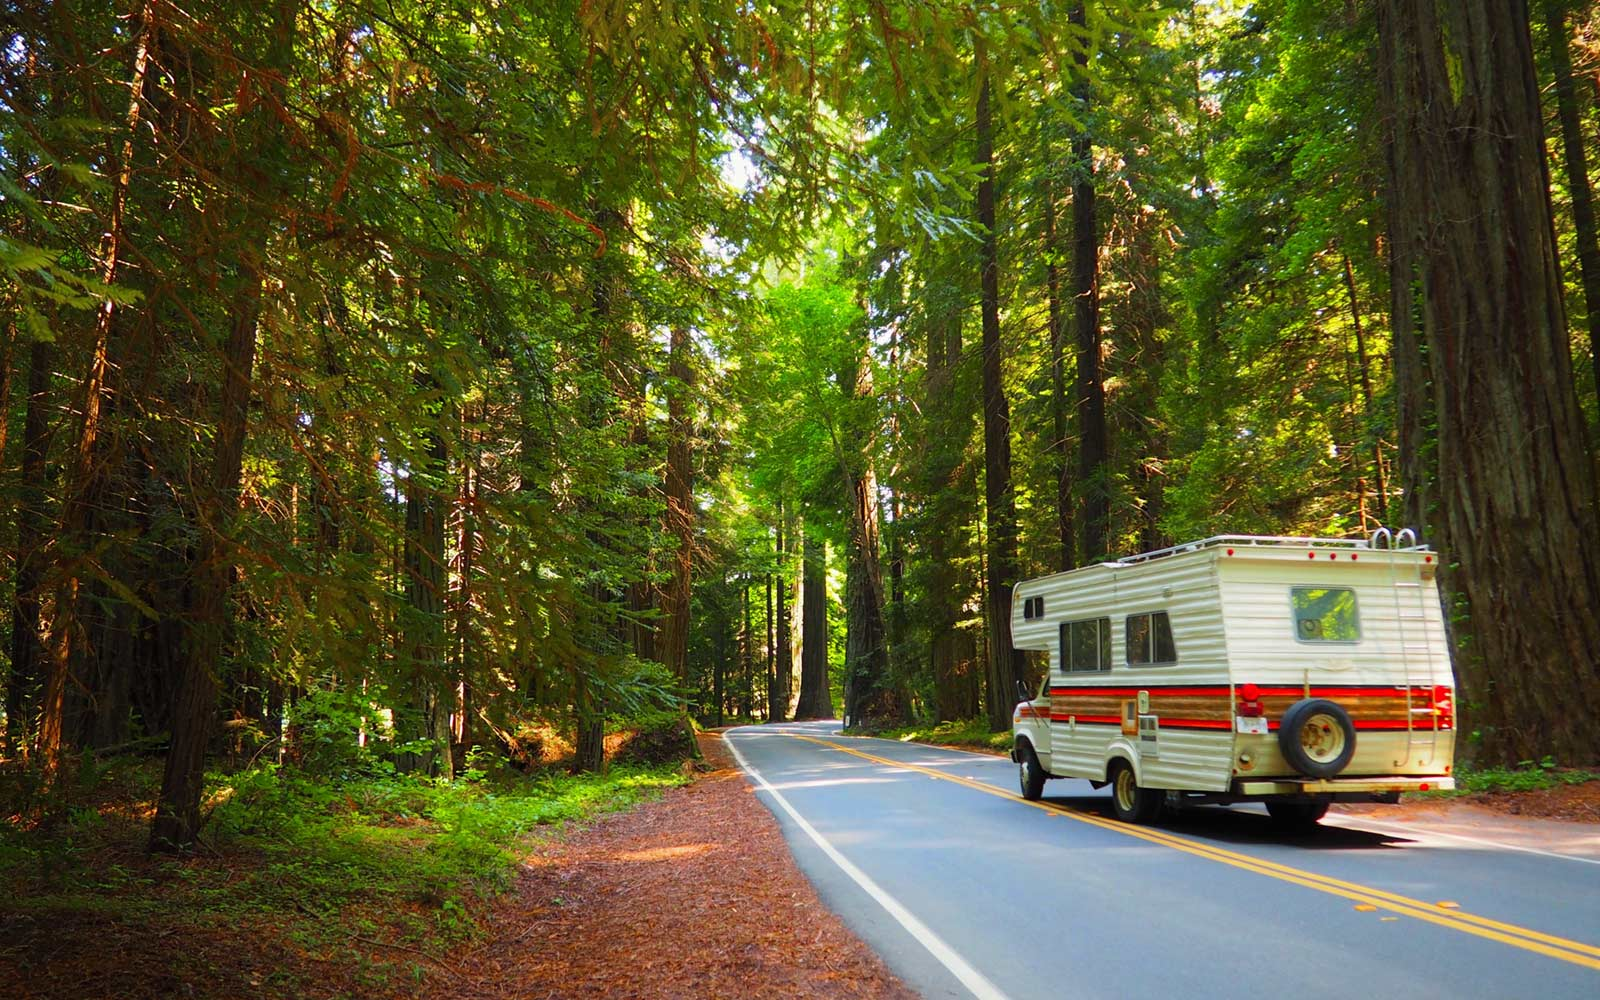 Recreational vehicle, Redwood National Forest, California